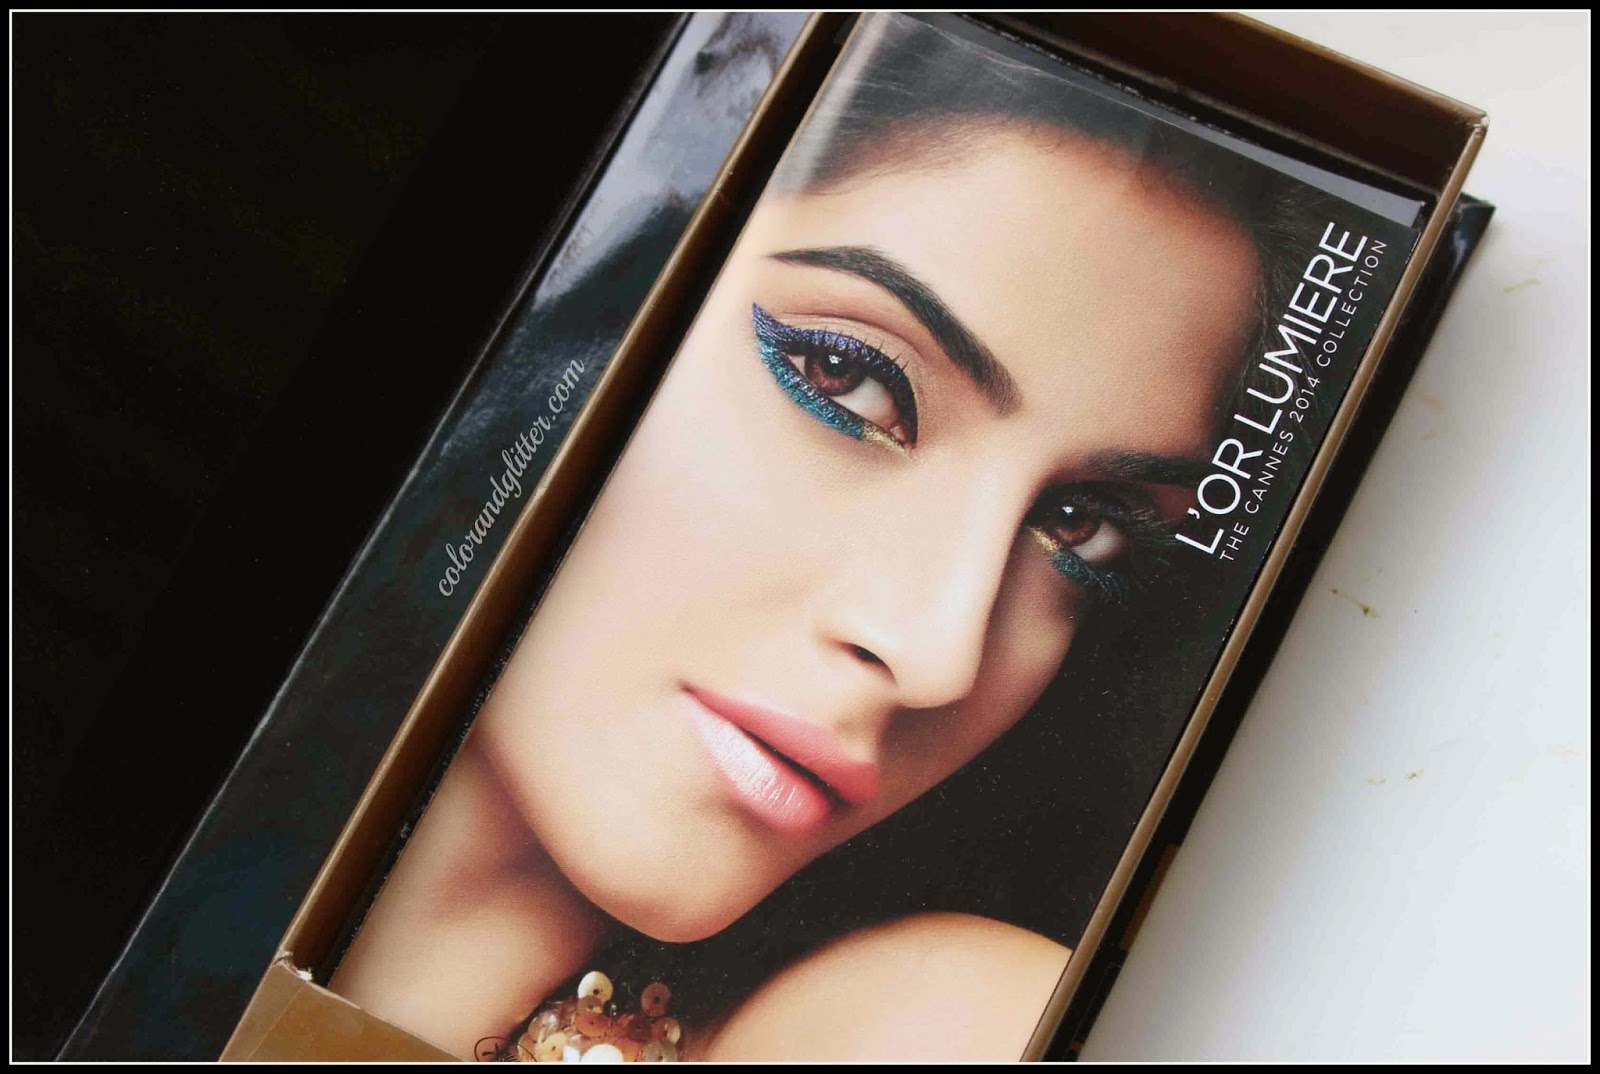 L'Oreal Paris L'Or Lumiere Cannes Collection Box - Resplendent in Gold